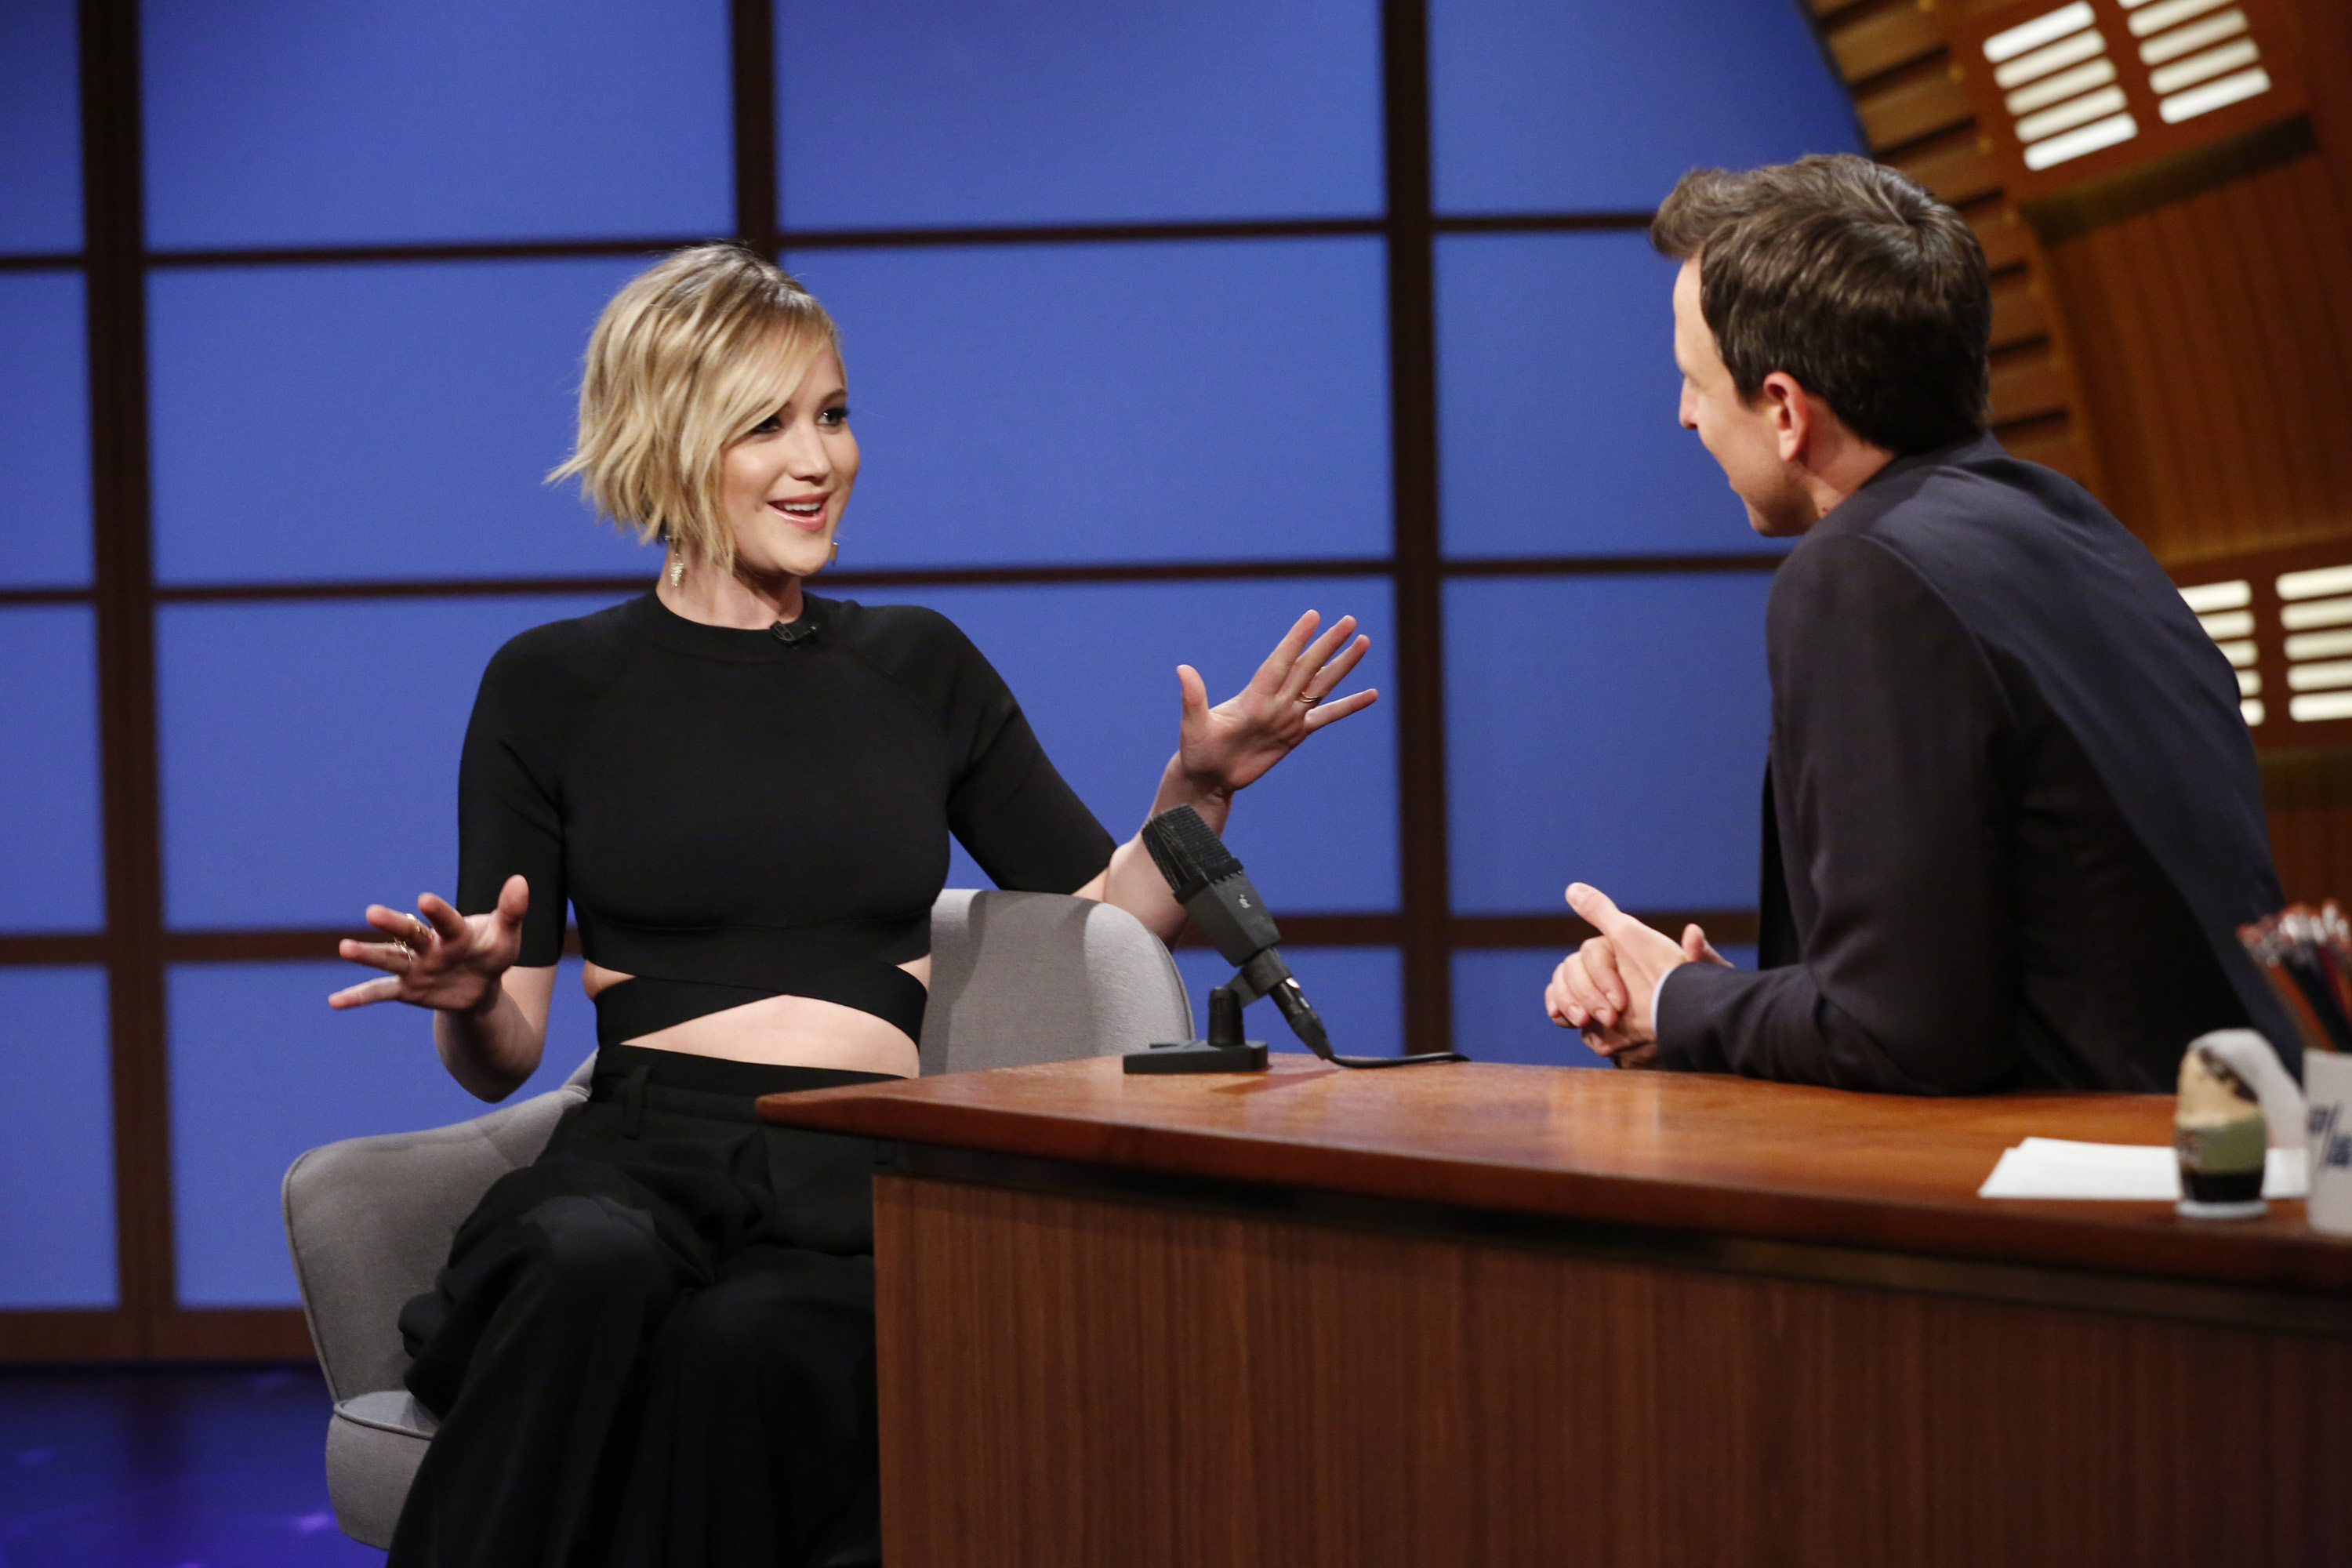 Jennifer Lawrence during an interview on Late Night with Seth Meyers on May 21, 2014.